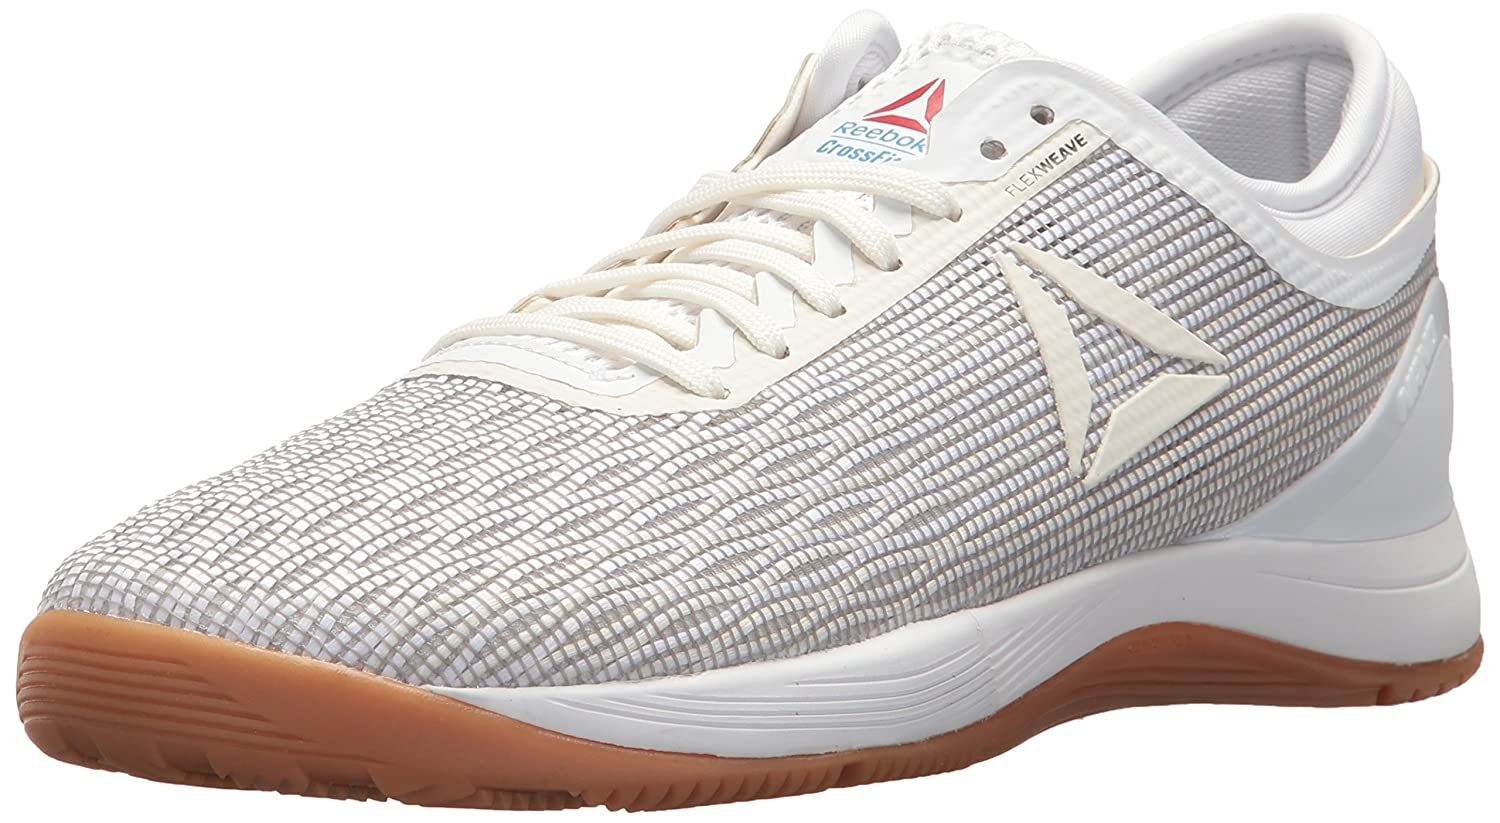 Reebok Women's Crossfit Nano 8.0 Flexweave Cross Trainer B073XB8CZS 5 B(M) US|White/Classic White/Excellent Red/Blue/Gum